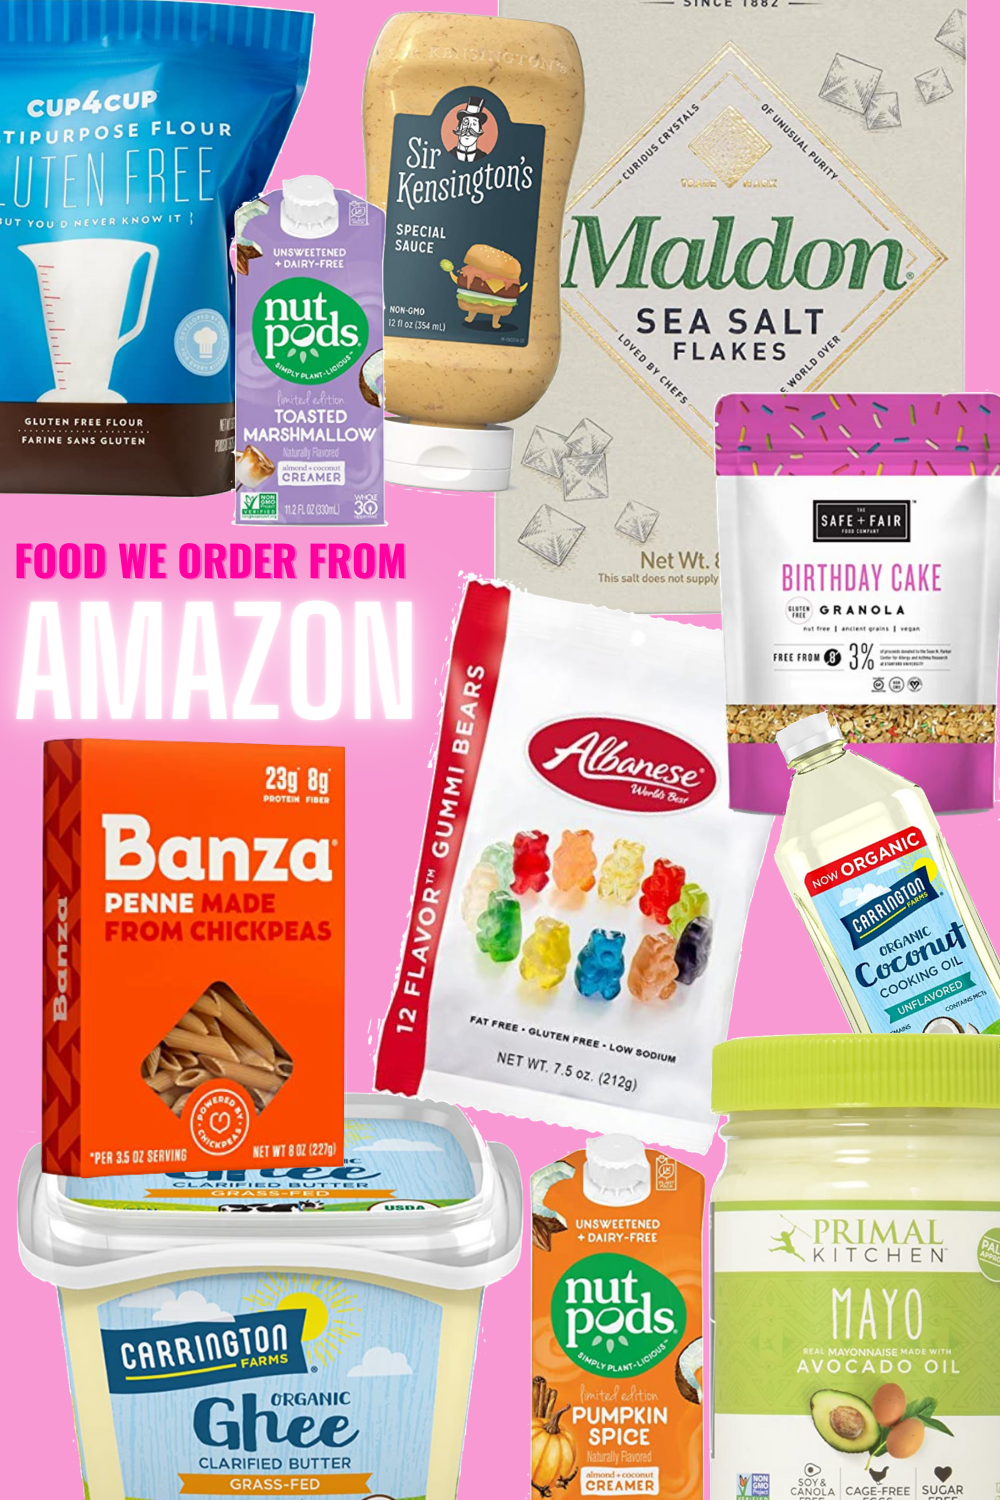 What Amazon Food Items We Order - Sharing a rundown of the best Amazon food pantry items to order for at-your-door delivery! | Amazon Pantry - Amazon Food - Amazon Prime Whole Foods